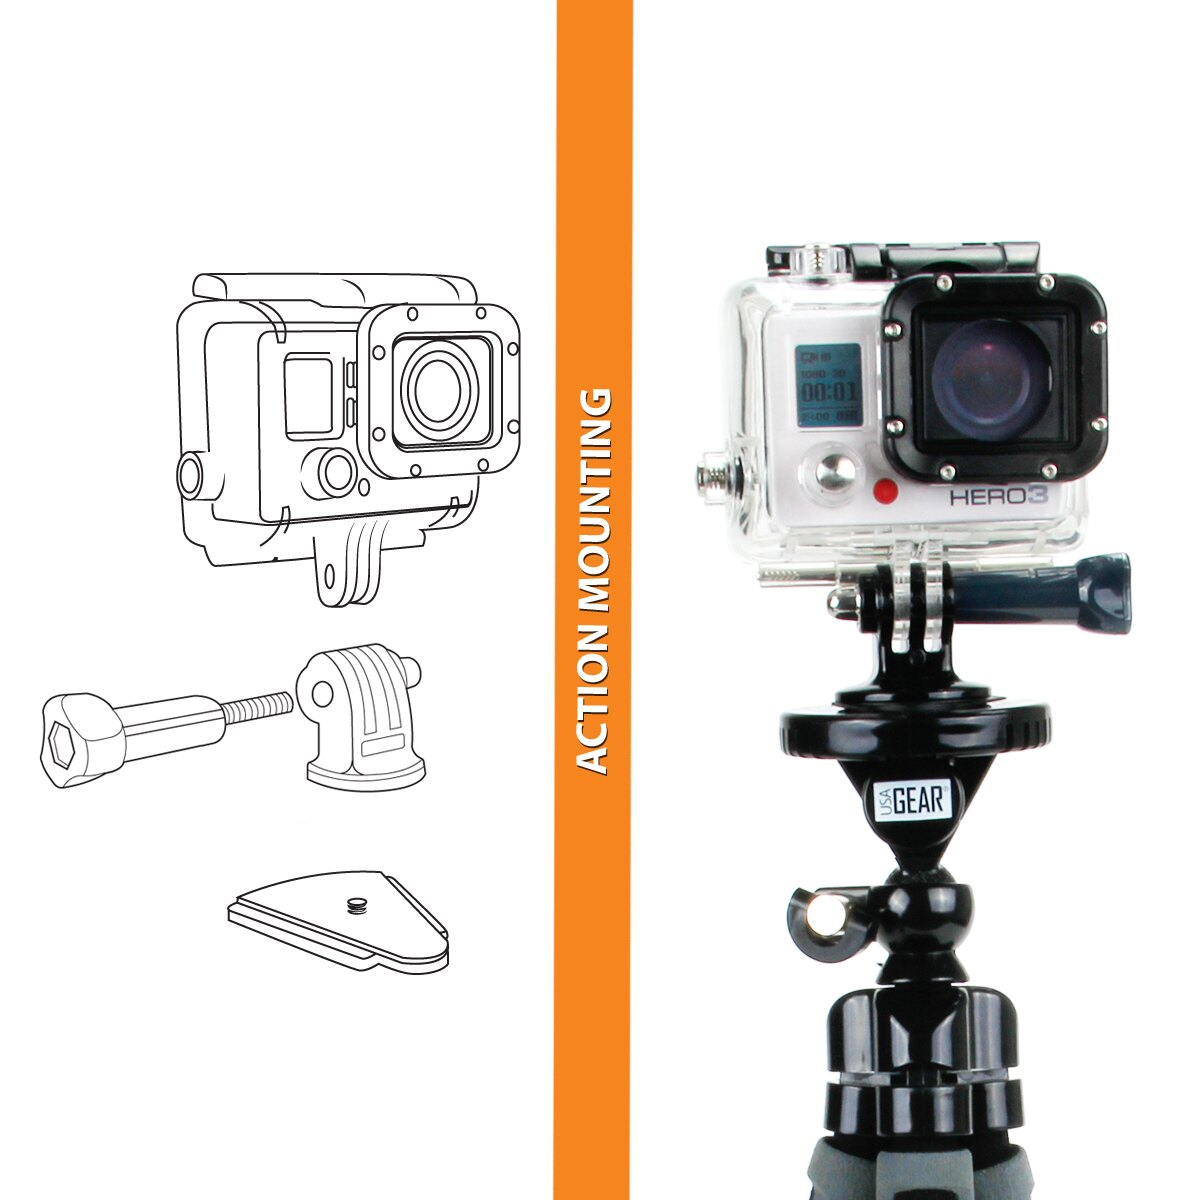 USA GEAR Flexible Tripod with 360-Degree Rotating Mount, Smartphone Adapter and Quick-Release Plate 5